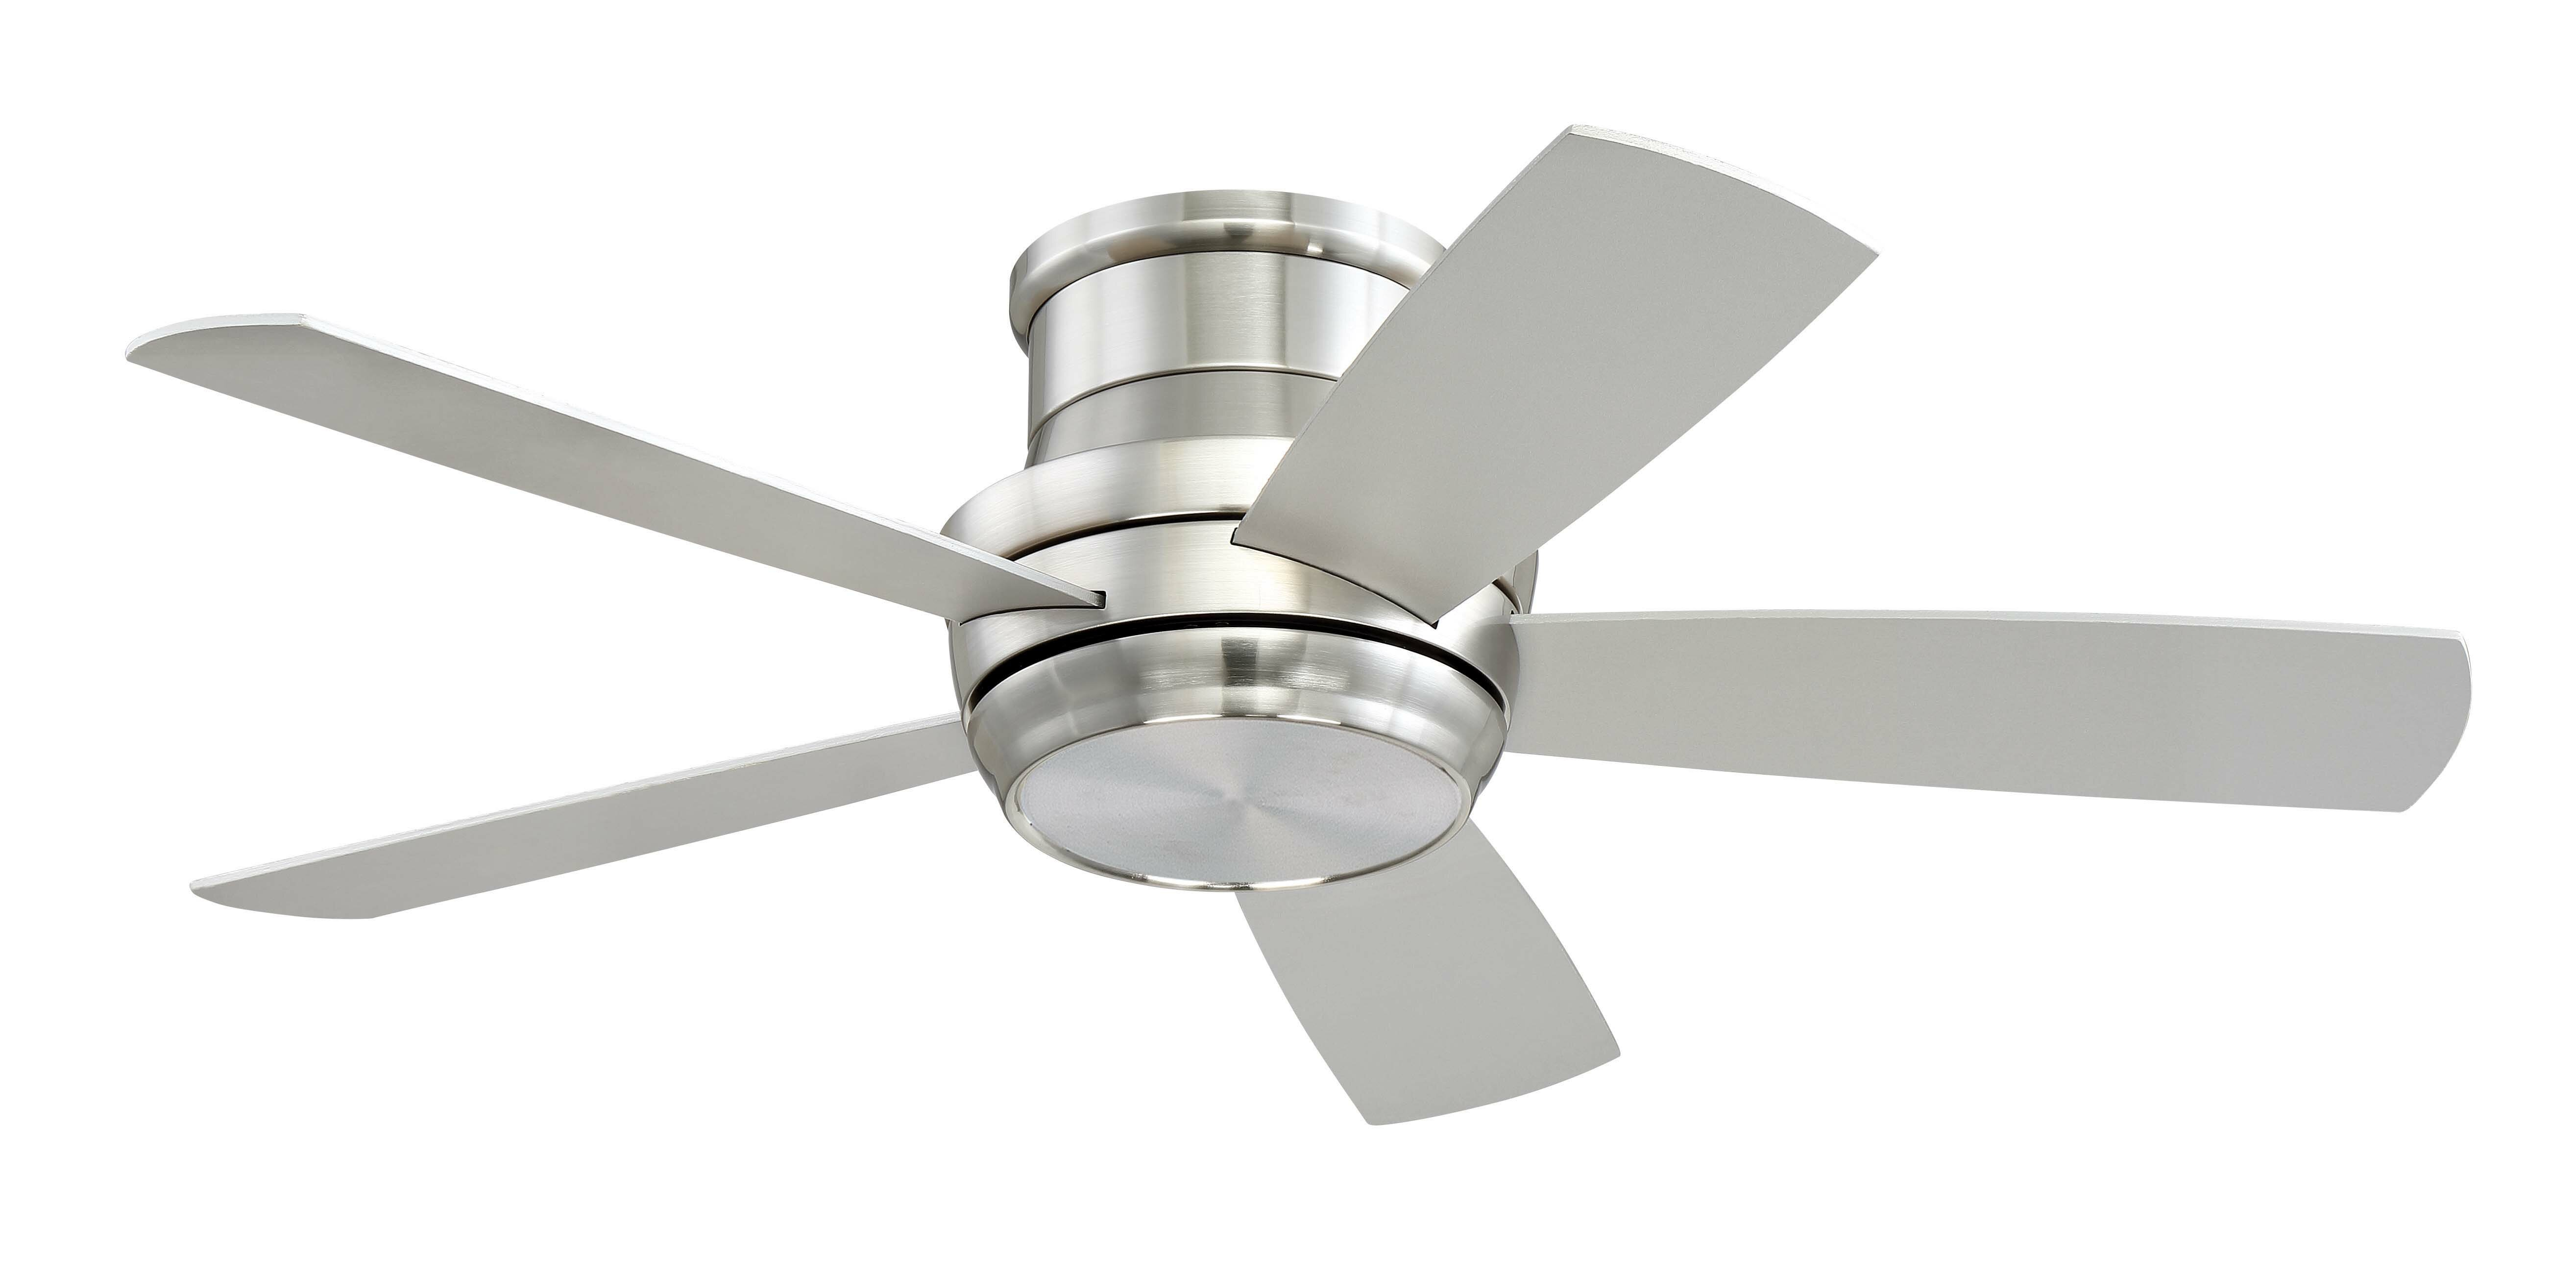 fan fans b architonic from en by product eter faro ceiling hugger